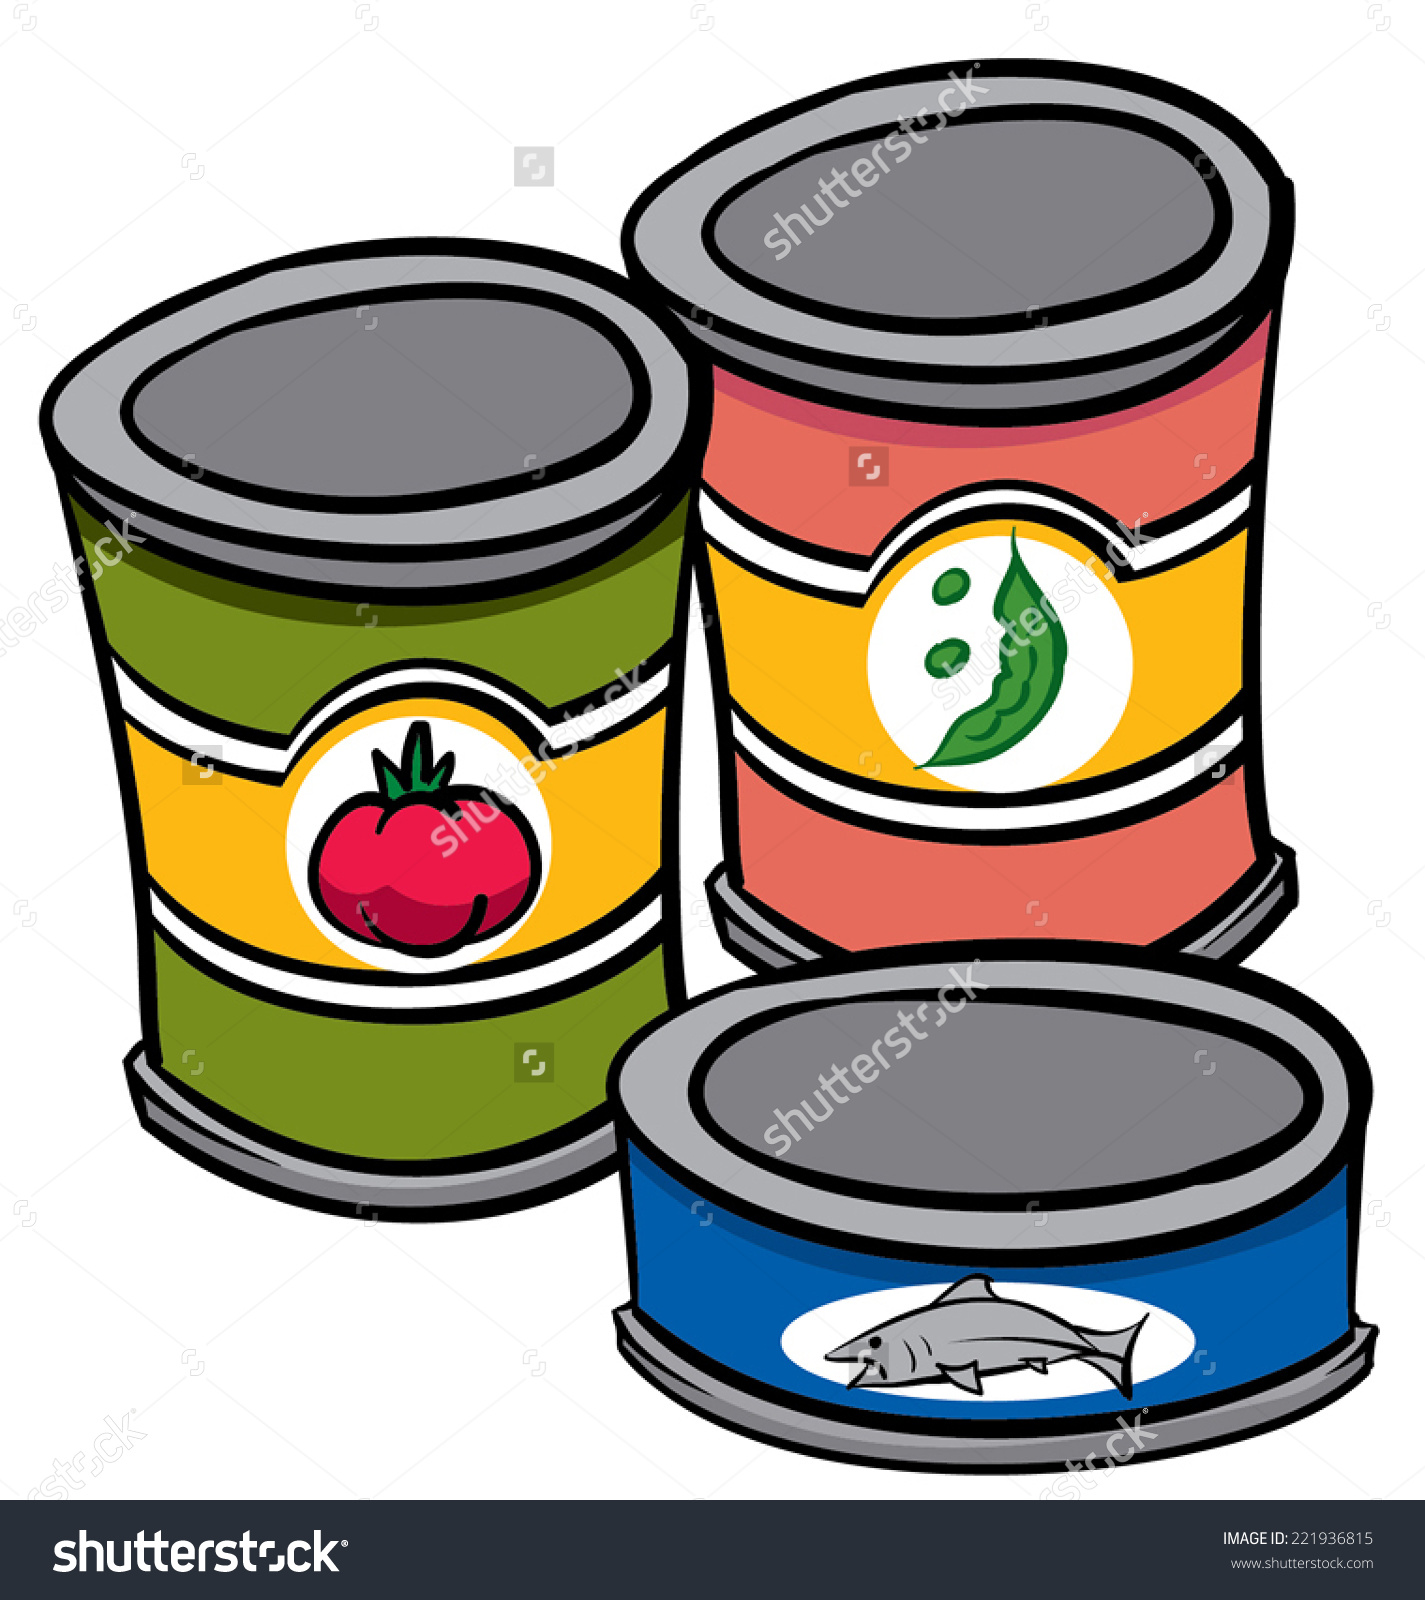 hight resolution of canned food clipart 52f8c53d723f40b7820390cff6ea26